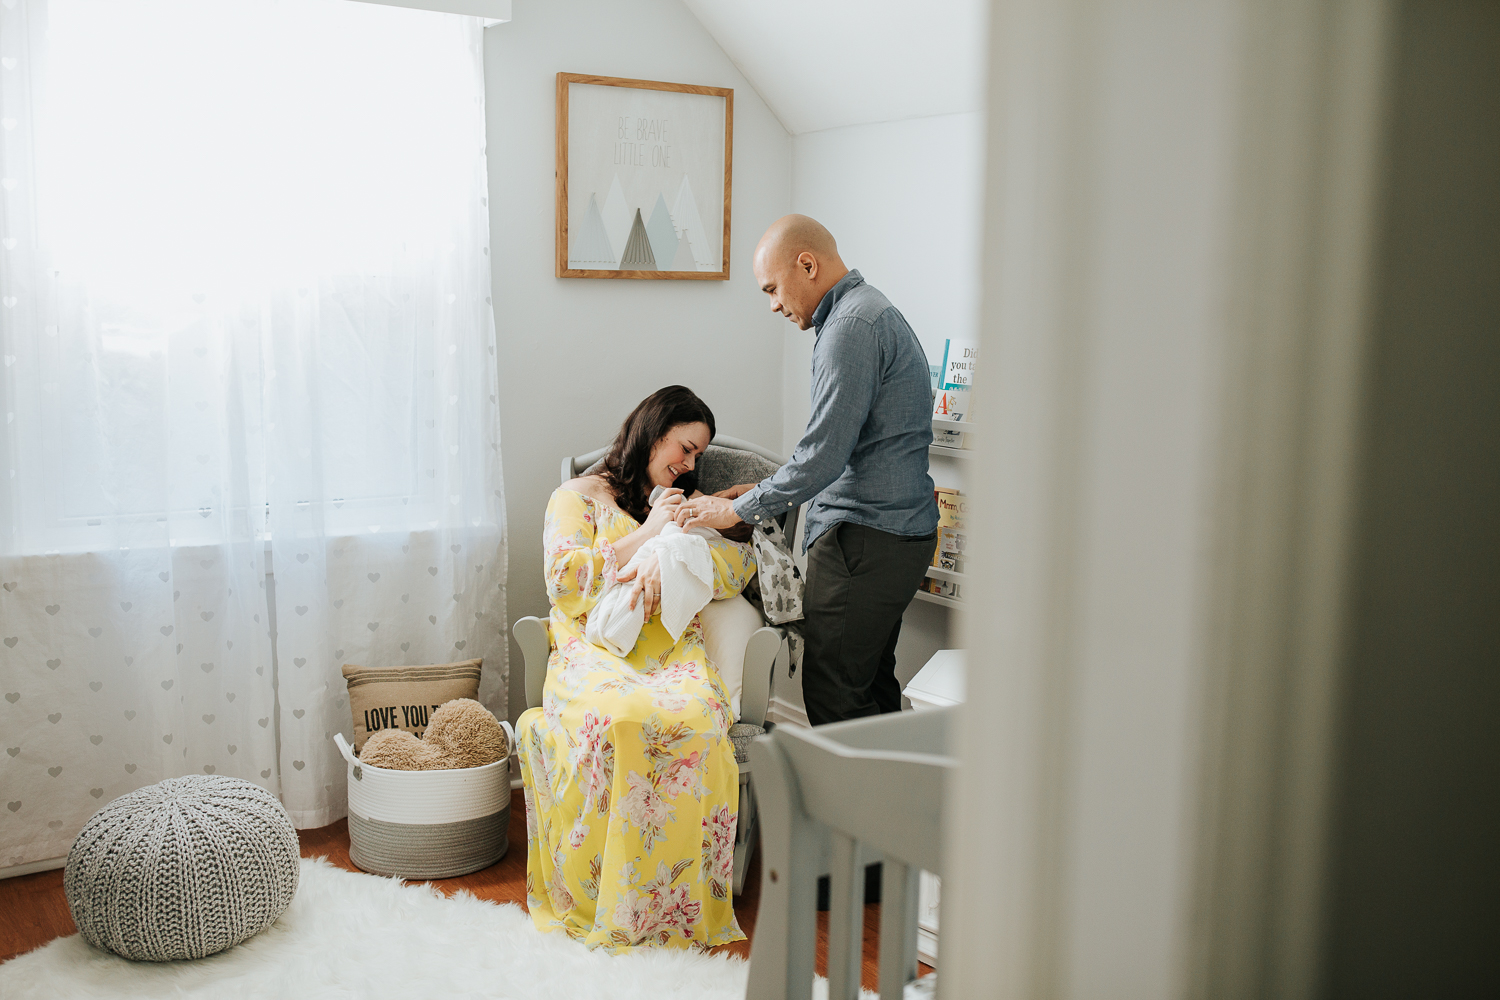 new mom in yellow dress sitting in nursery rocker feeding 3 week old baby boy his bottle, father standing next to chair holding son's hand - GTA Lifestyle Photography